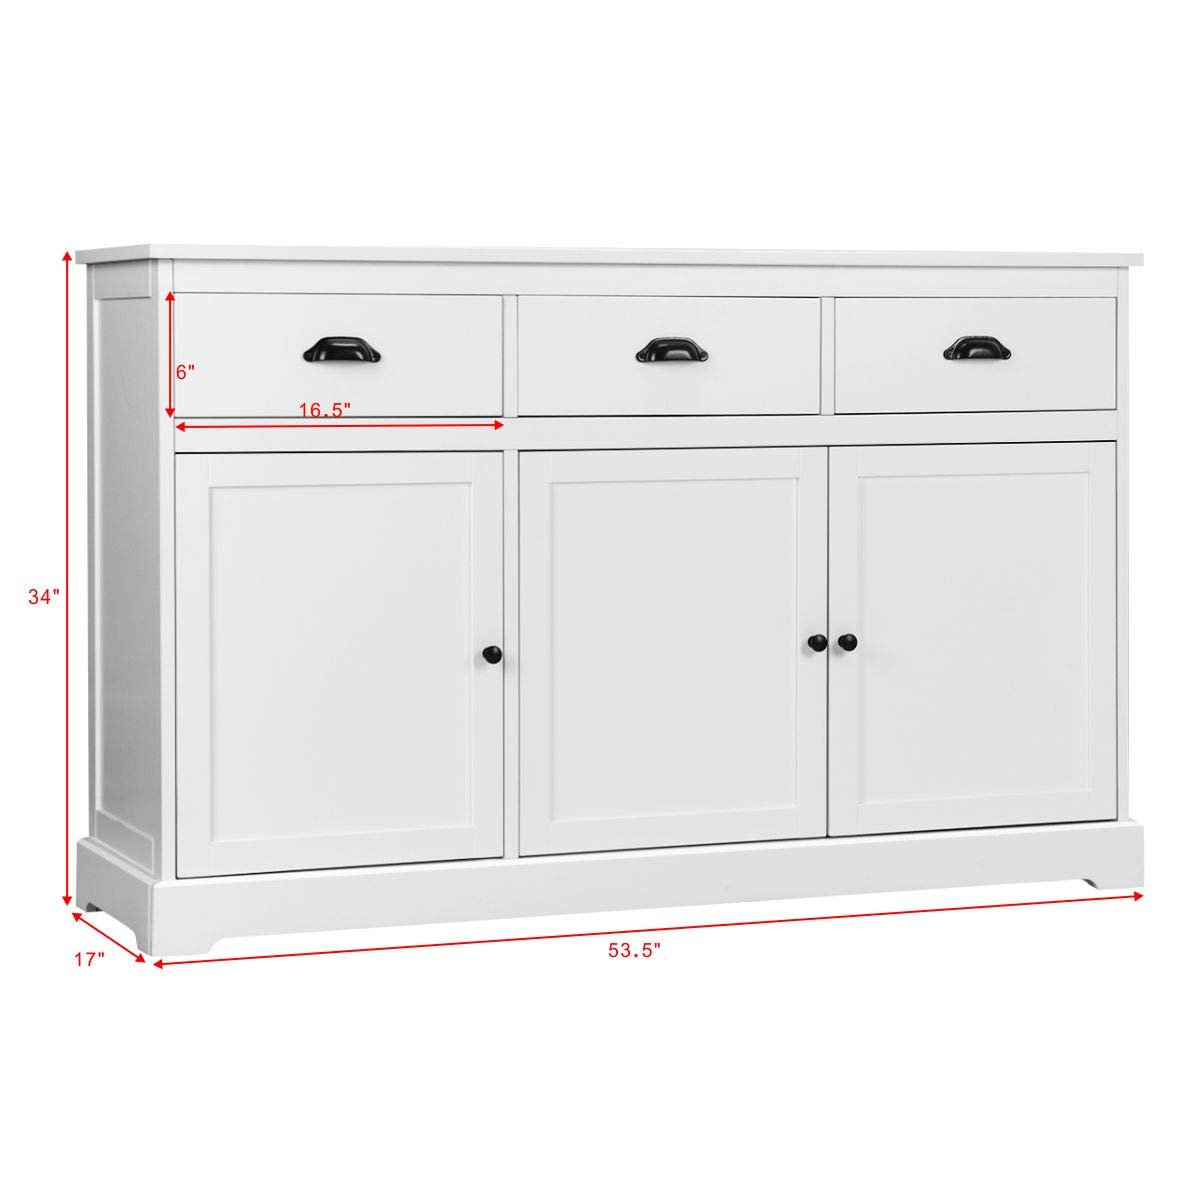 Giantex Sideboard Buffet Server Storage Cabinet Console Table Home Kitchen Dining Room Furniture Entryway Cupboard with 2 Cabinets and 3 Drawers Adjustable Shelves, White (White) by Giantex (Image #8)